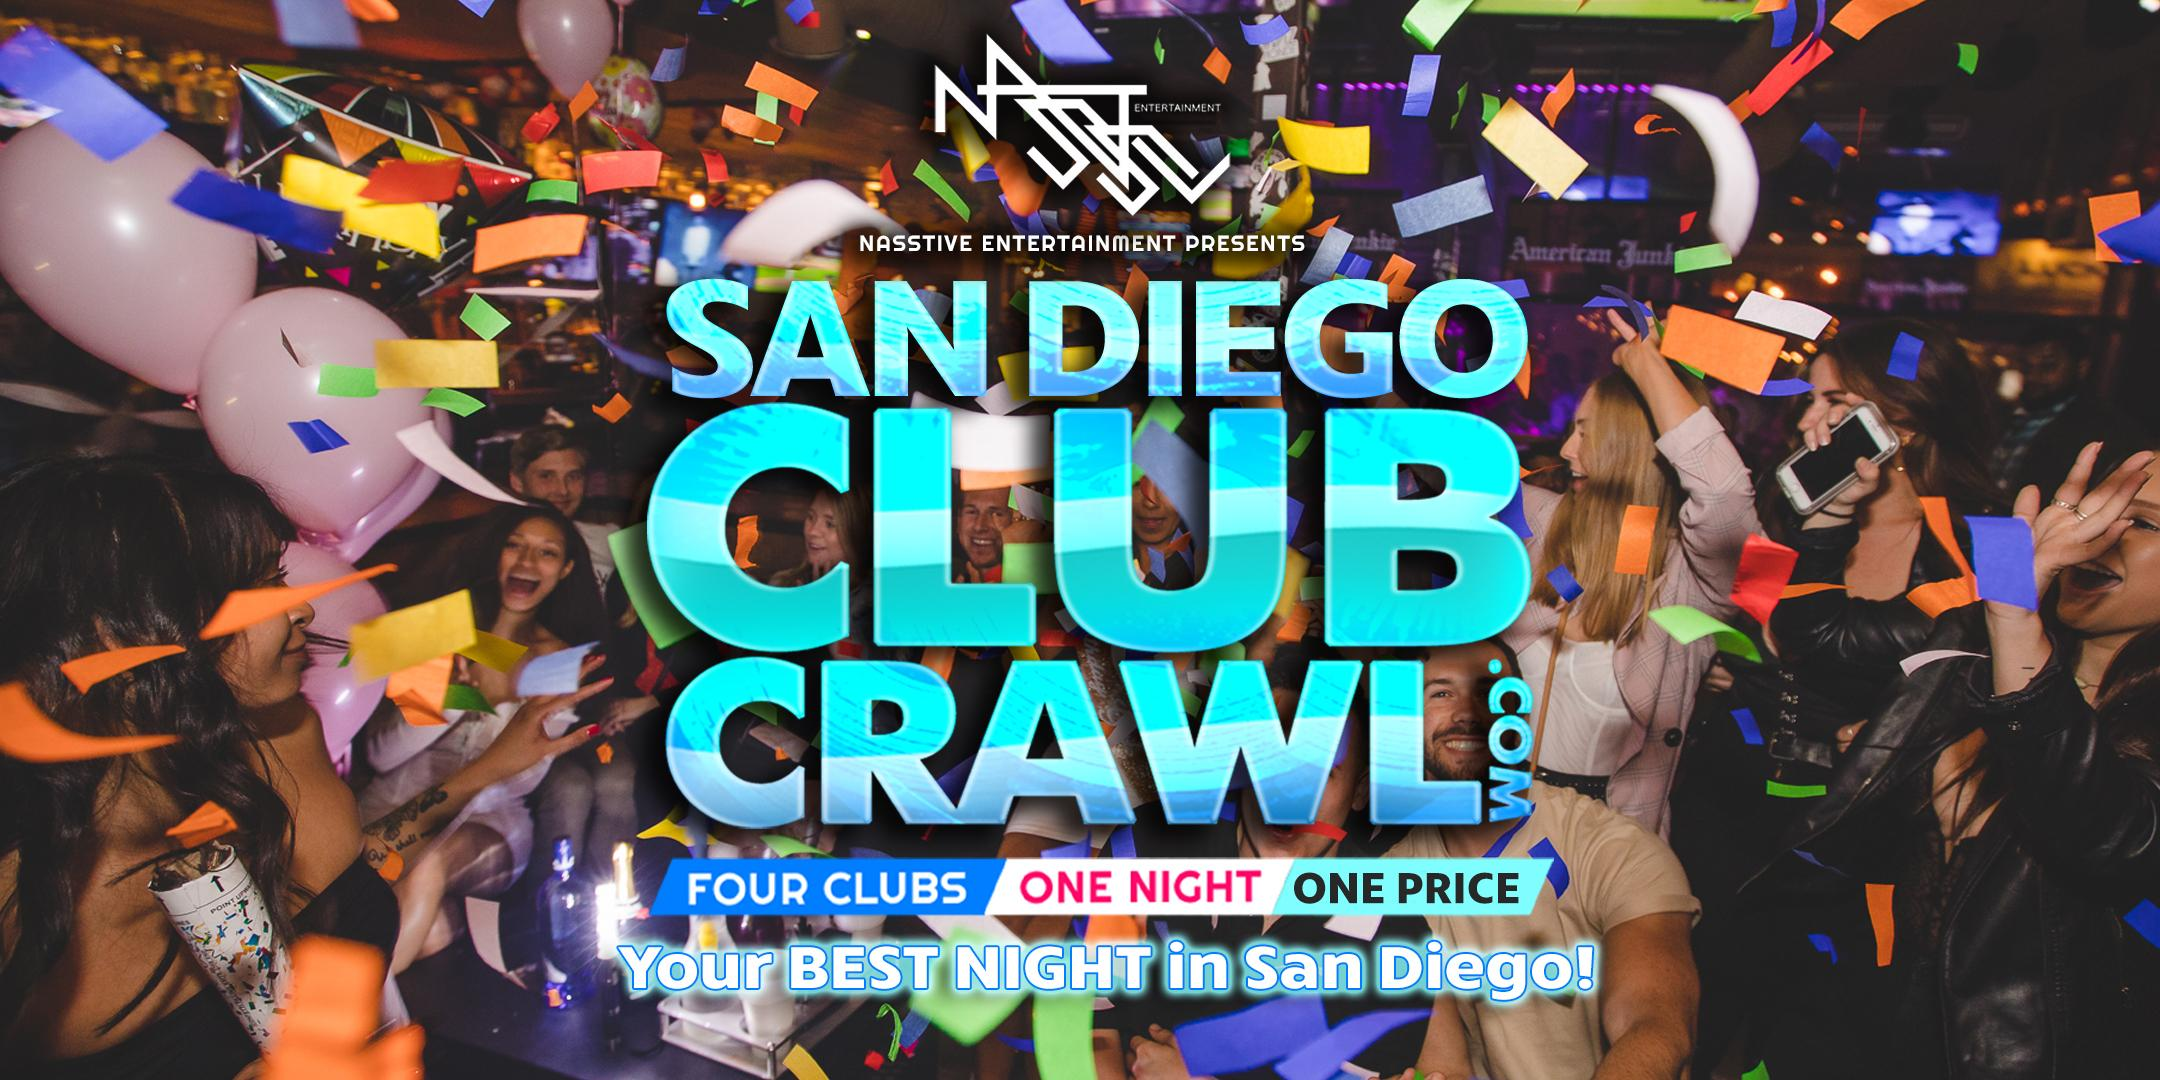 San Diego Club Crawl - Guided party tour to 4 SD nightclubs and bars